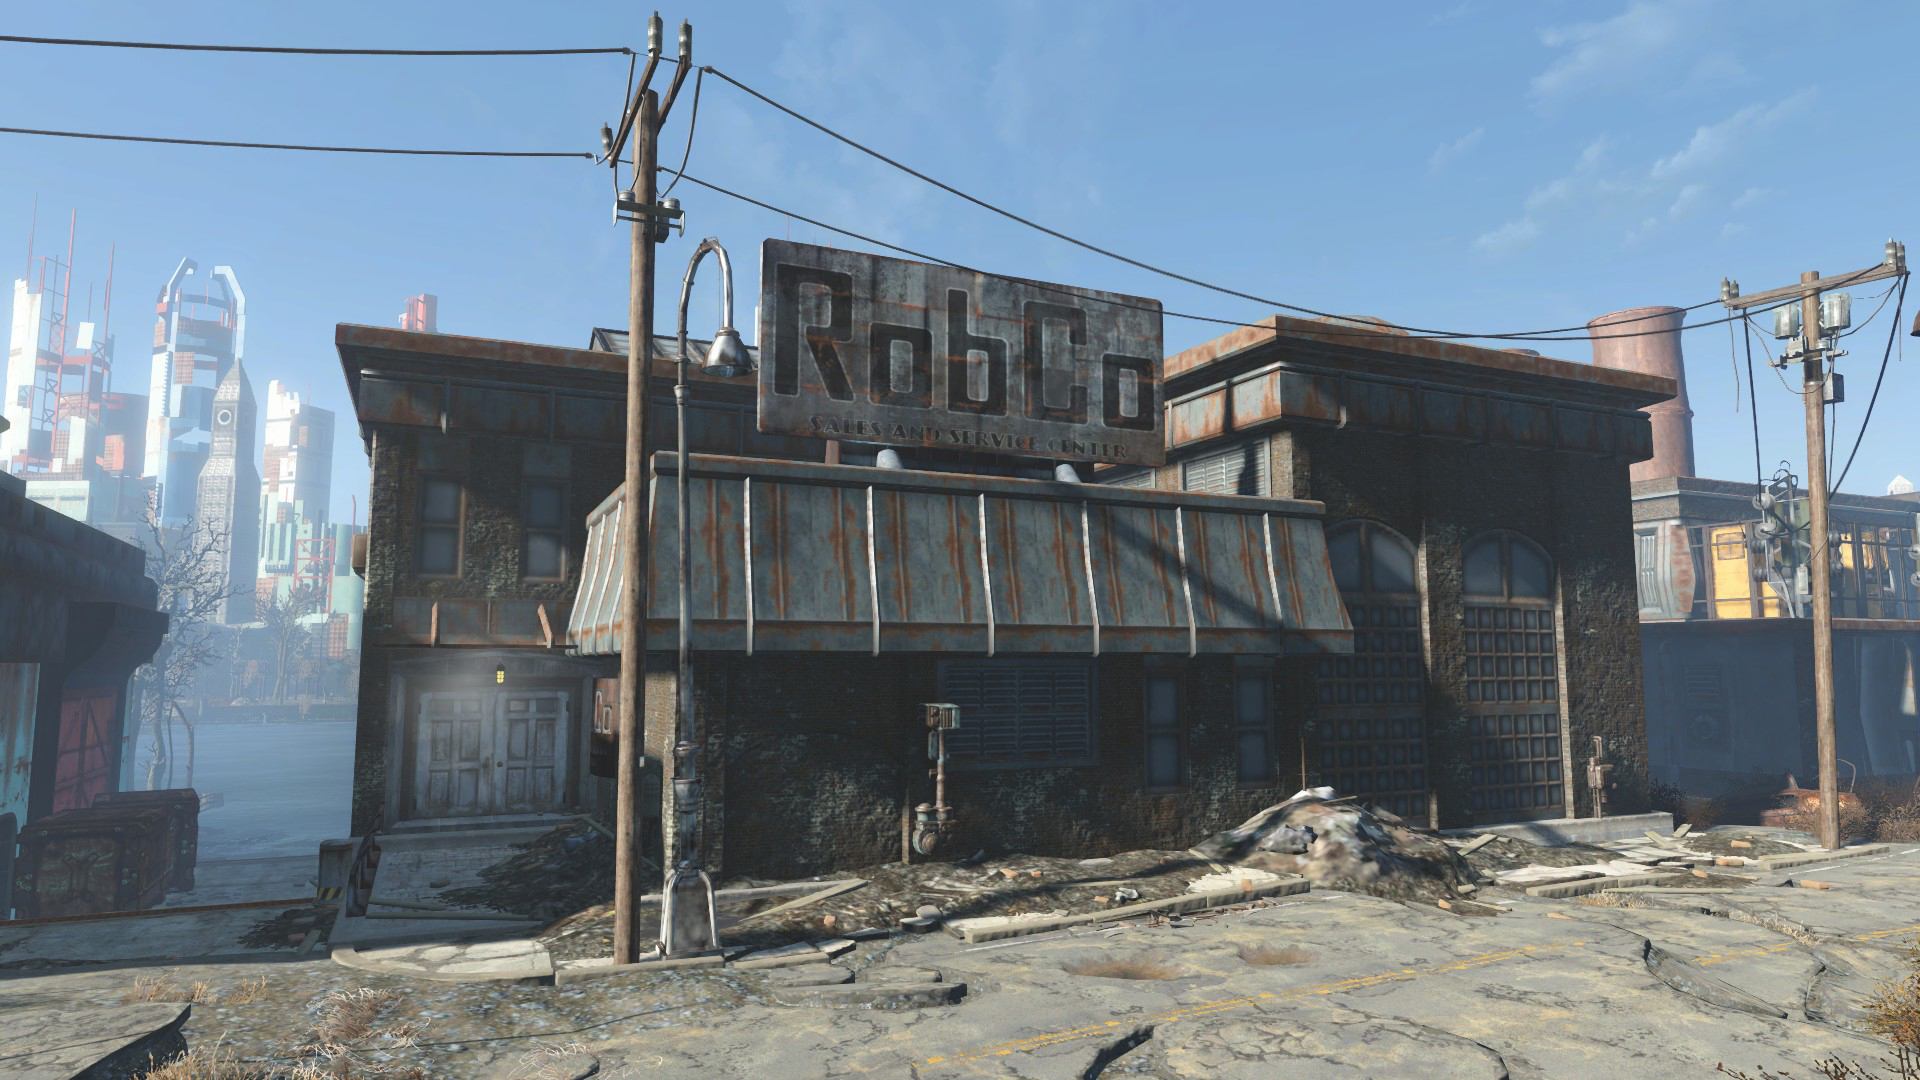 latest?cb=20160327013306 robco sales & service center fallout wiki fandom powered by wikia fallout 4 east boston police station fuse box at eliteediting.co